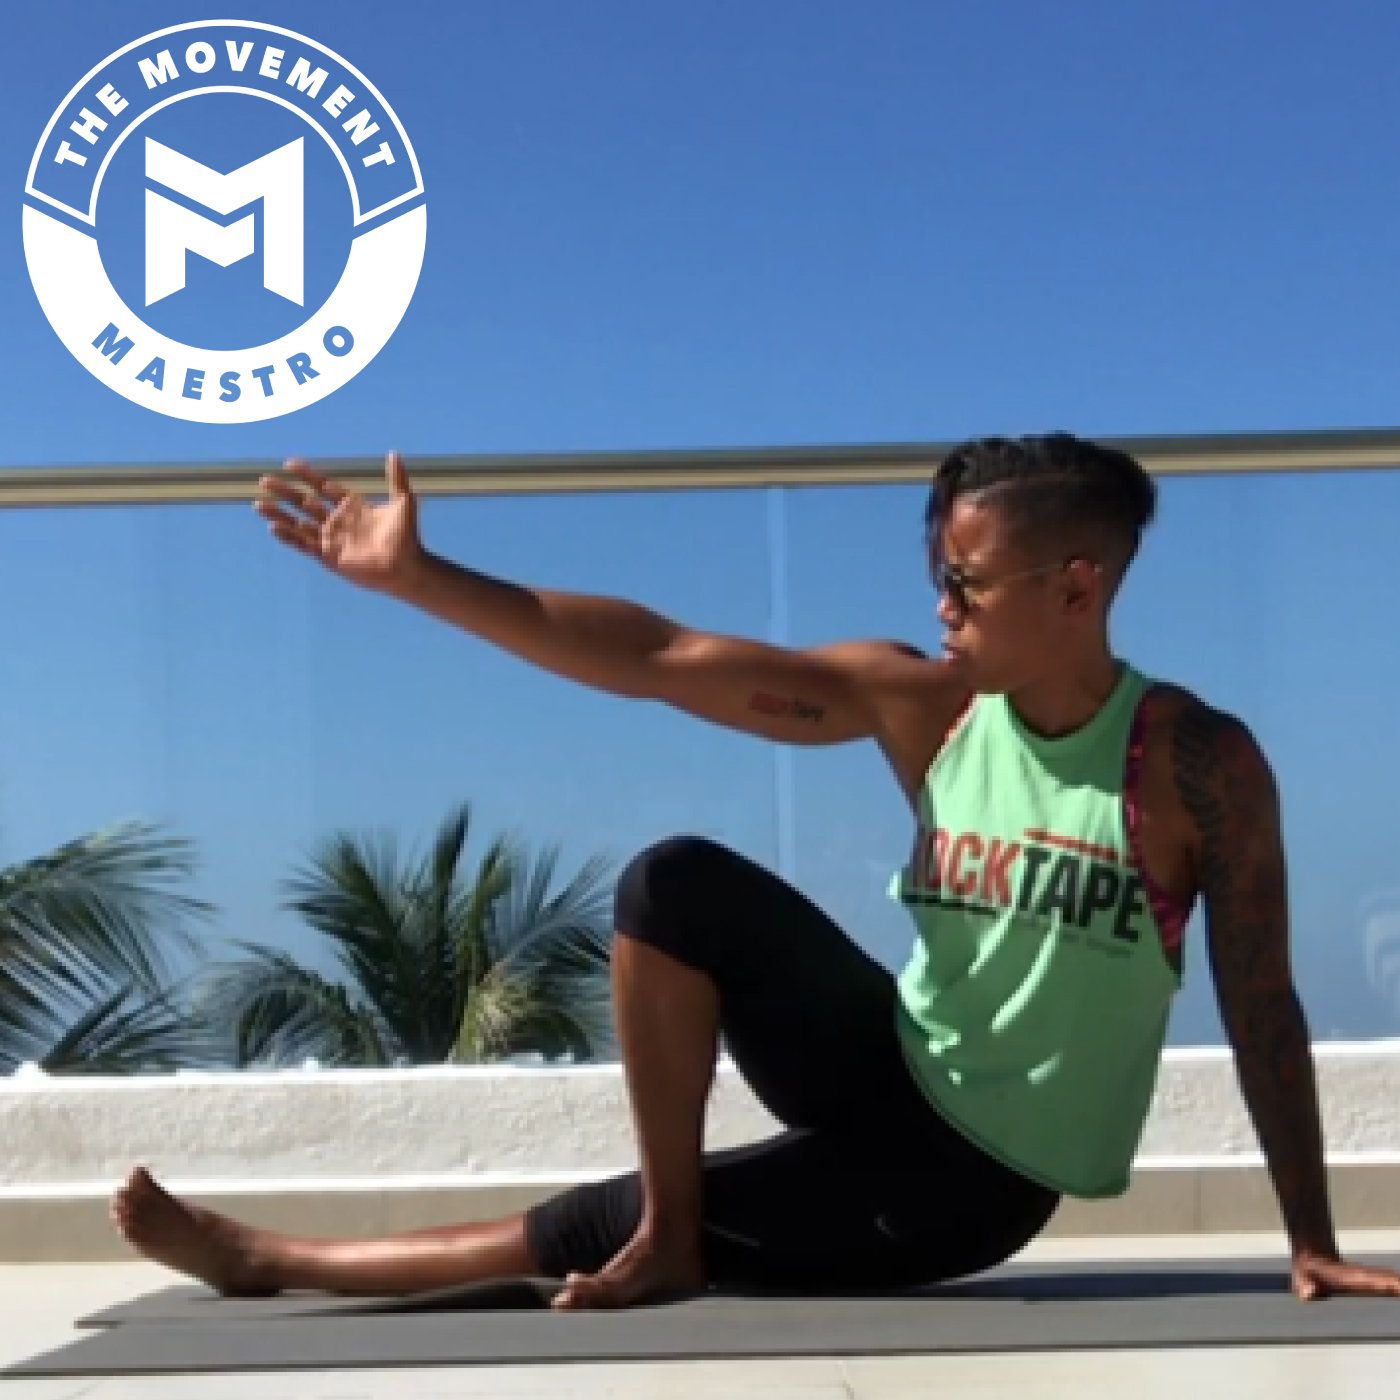 074: Treating Movement NOT Muscles w/ Shanté Cofield